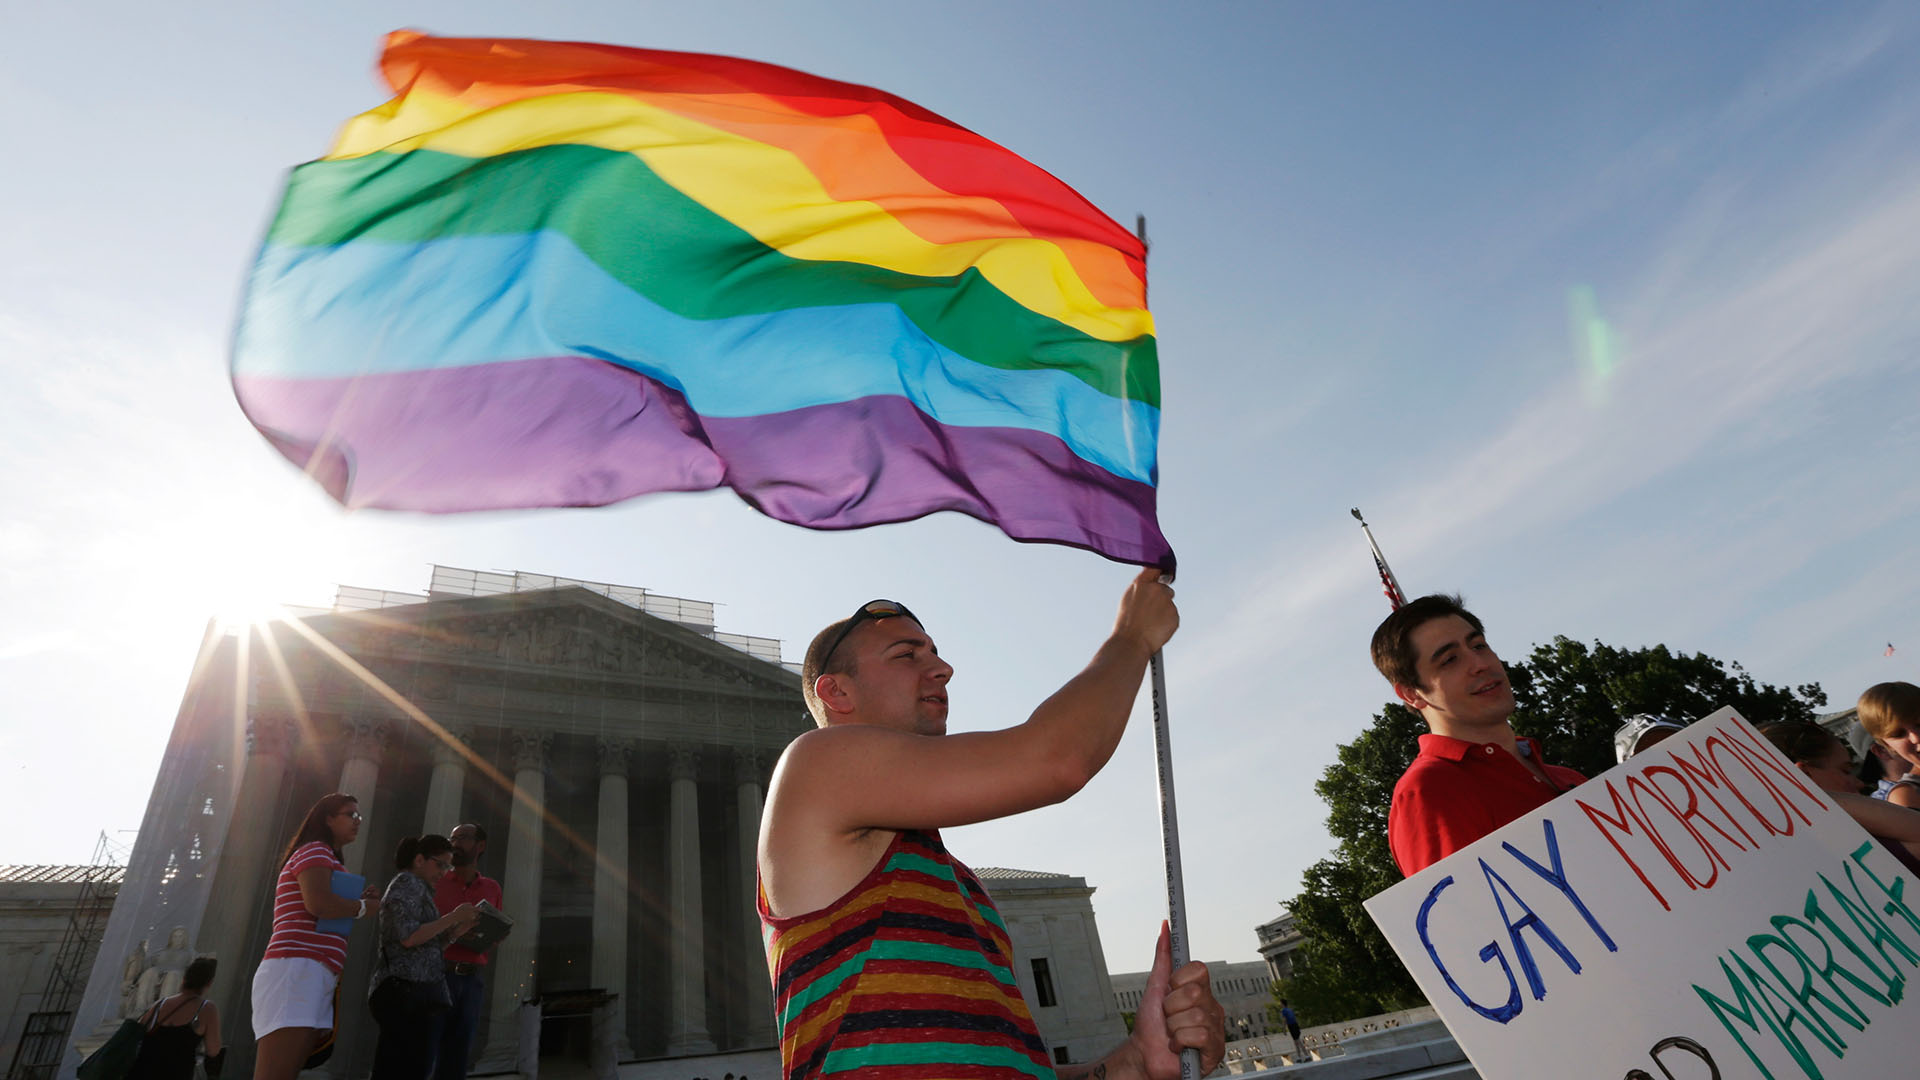 Gay rights supporter Vin Testa waves a rainbow flag outside the U.S. Supreme Court building on June 26, 2013.